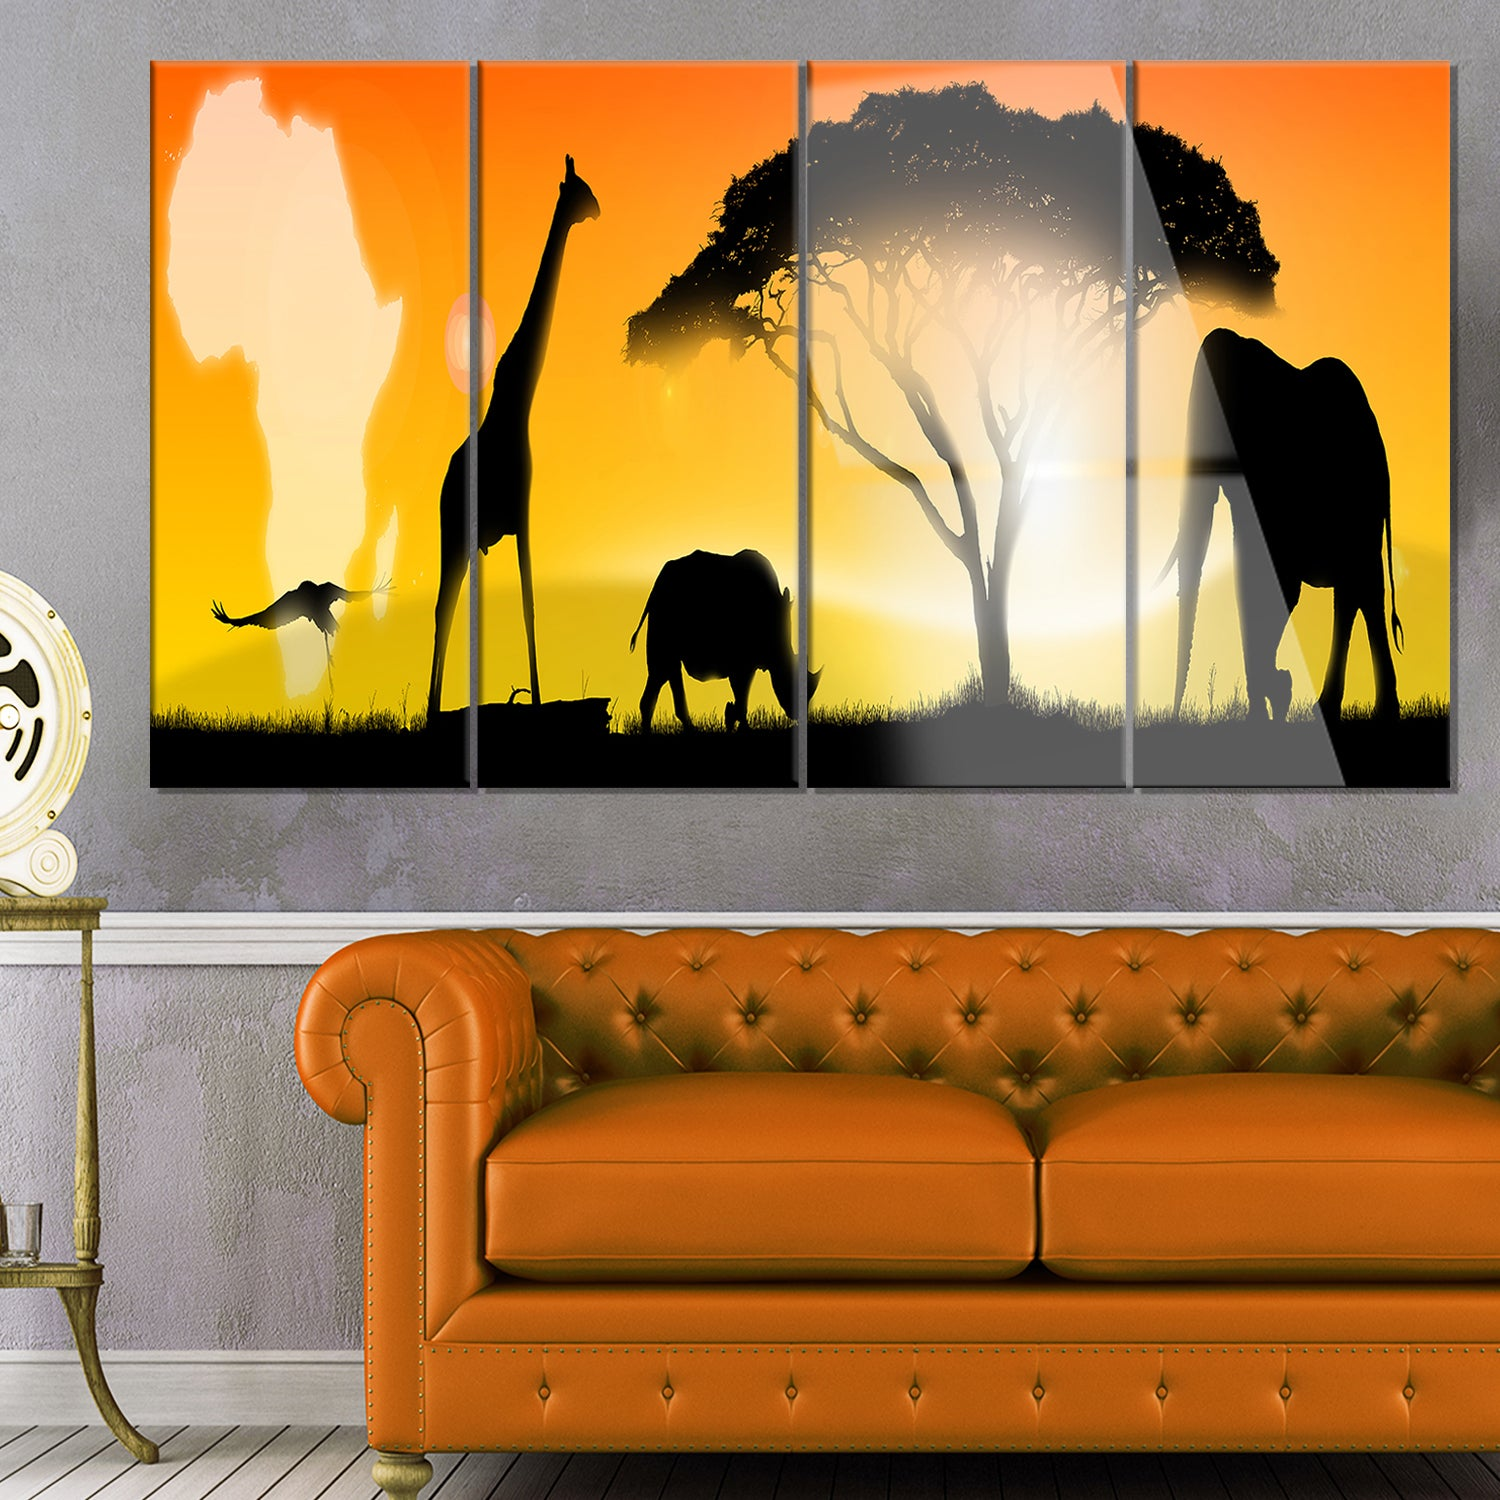 Outstanding Kokopelli Wall Decor Photos - All About Wallart ...